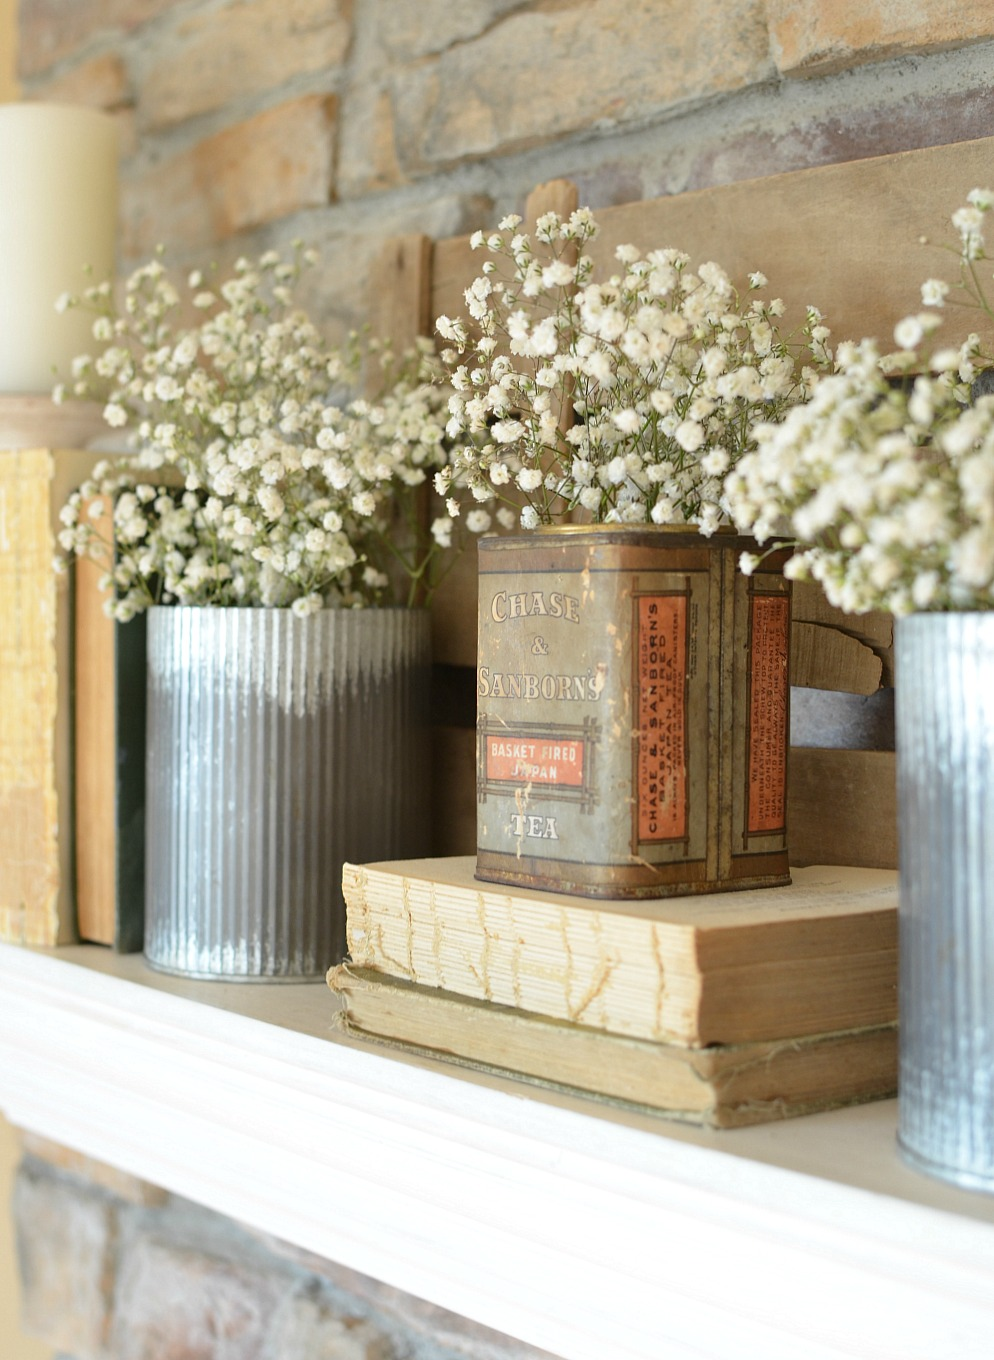 A Vintage Can + Easy Spring Mantel